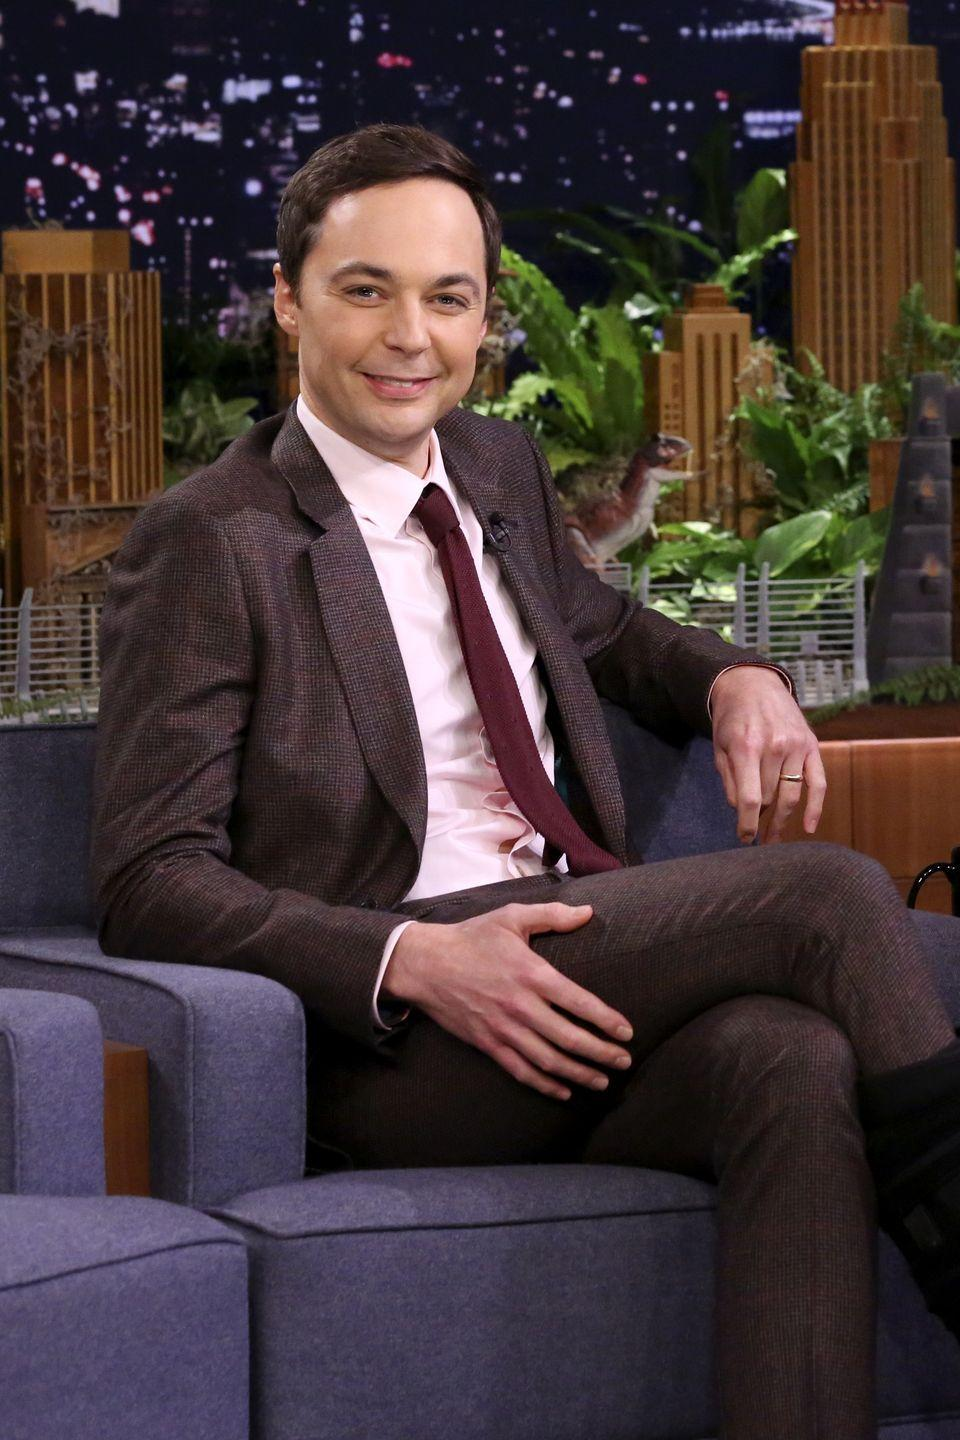 "<p>While his role as Sheldon Cooper earned him a Golden Globe, <a href=""https://www.forbes.com/sites/maddieberg/2017/09/28/the-worlds-highest-paid-tv-actors-jim-parsons-leads-with-27-5-million/#8770c6a51a30"" rel=""nofollow noopener"" target=""_blank"" data-ylk=""slk:along with a hefty paycheck"" class=""link rapid-noclick-resp"">along with a hefty paycheck</a>, Jim Parsons decided season 12 would be his last. CBS tried to urge the actor to stay by <a href=""https://www.businessinsider.com/big-bang-theory-actor-salaries-compared-to-highest-paid-tv-stars-2019-5"" rel=""nofollow noopener"" target=""_blank"" data-ylk=""slk:offering him a $50 million contract for two years"" class=""link rapid-noclick-resp"">offering him a $50 million contract for two years</a>, but he declined. The show then announced that it would <a href=""https://www.adweek.com/tv-video/the-big-bang-theory-will-officially-end-in-may-after-12-seasons/"" rel=""nofollow noopener"" target=""_blank"" data-ylk=""slk:end with Parsons after the season 12"" class=""link rapid-noclick-resp"">end with Parsons after the season 12</a>. </p>"